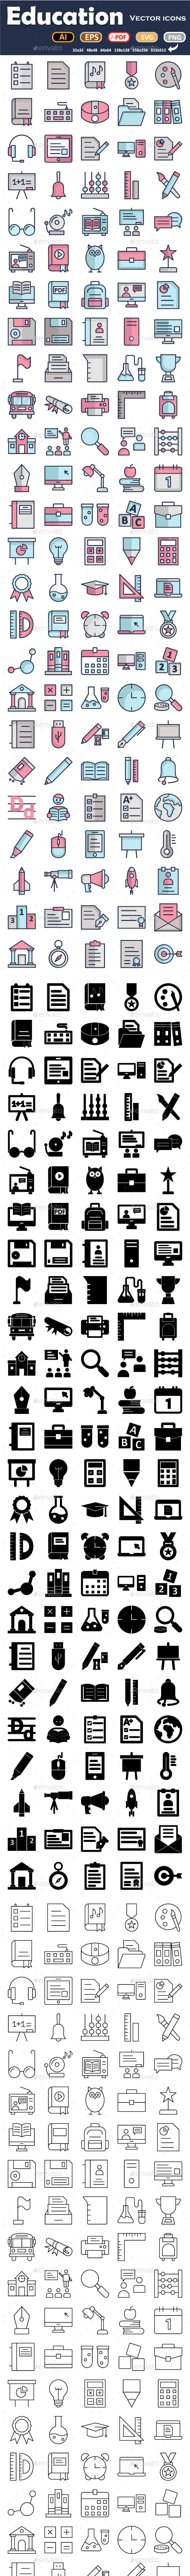 Education Icons Pack - Icons